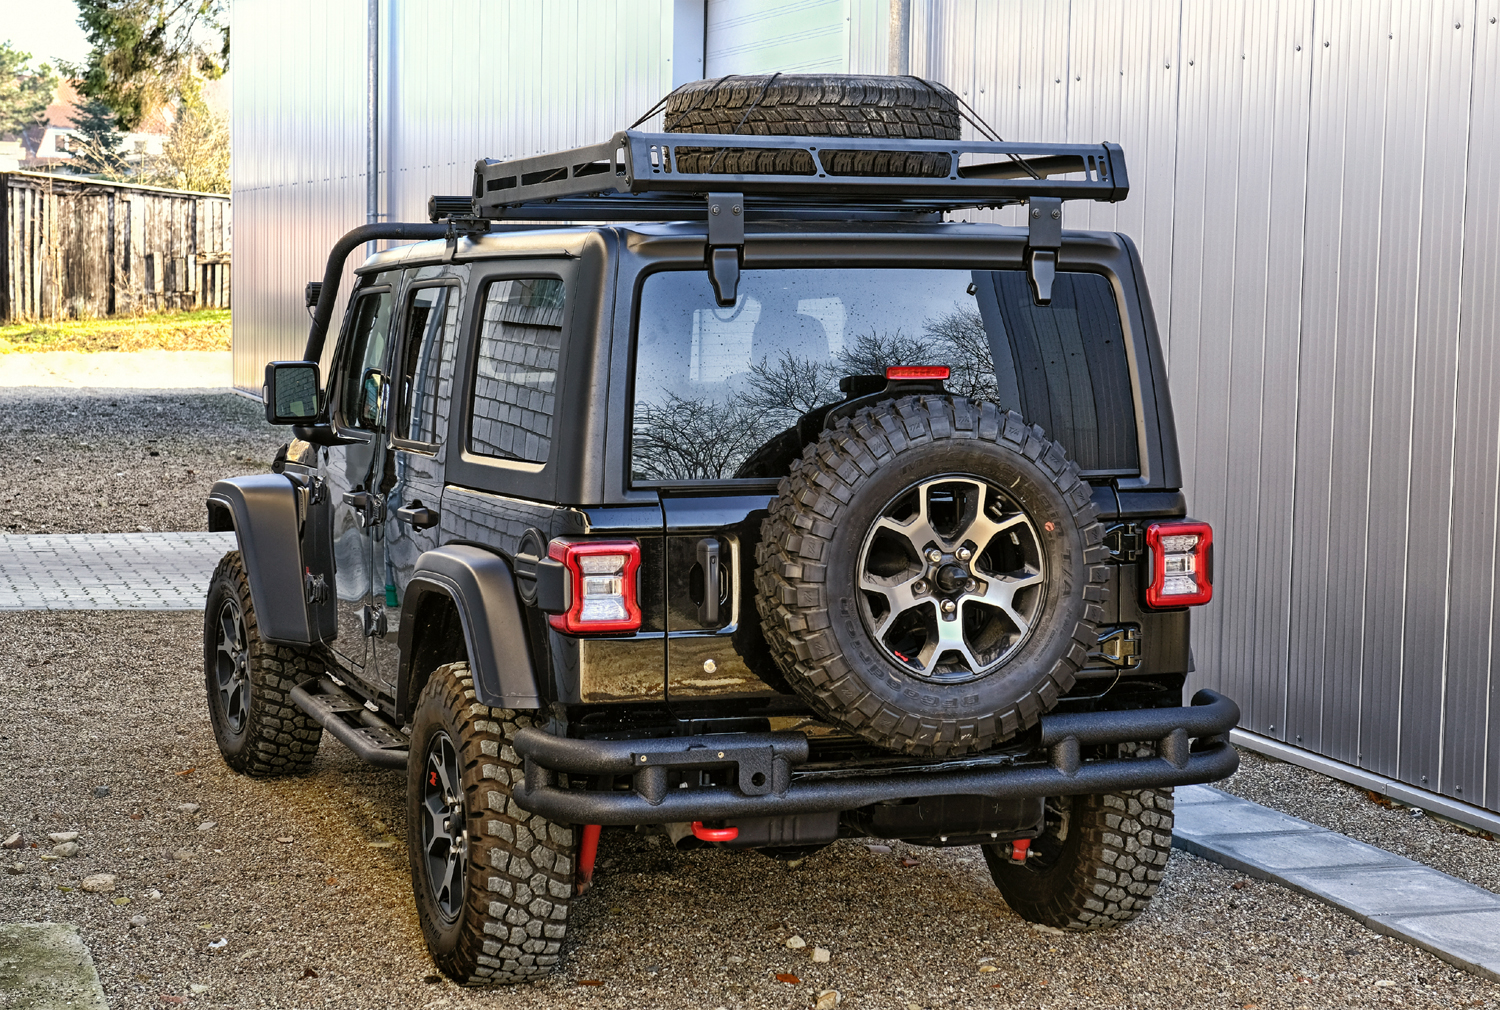 roof rack jeep wrangler jl 2018 2 4 doors black. Black Bedroom Furniture Sets. Home Design Ideas